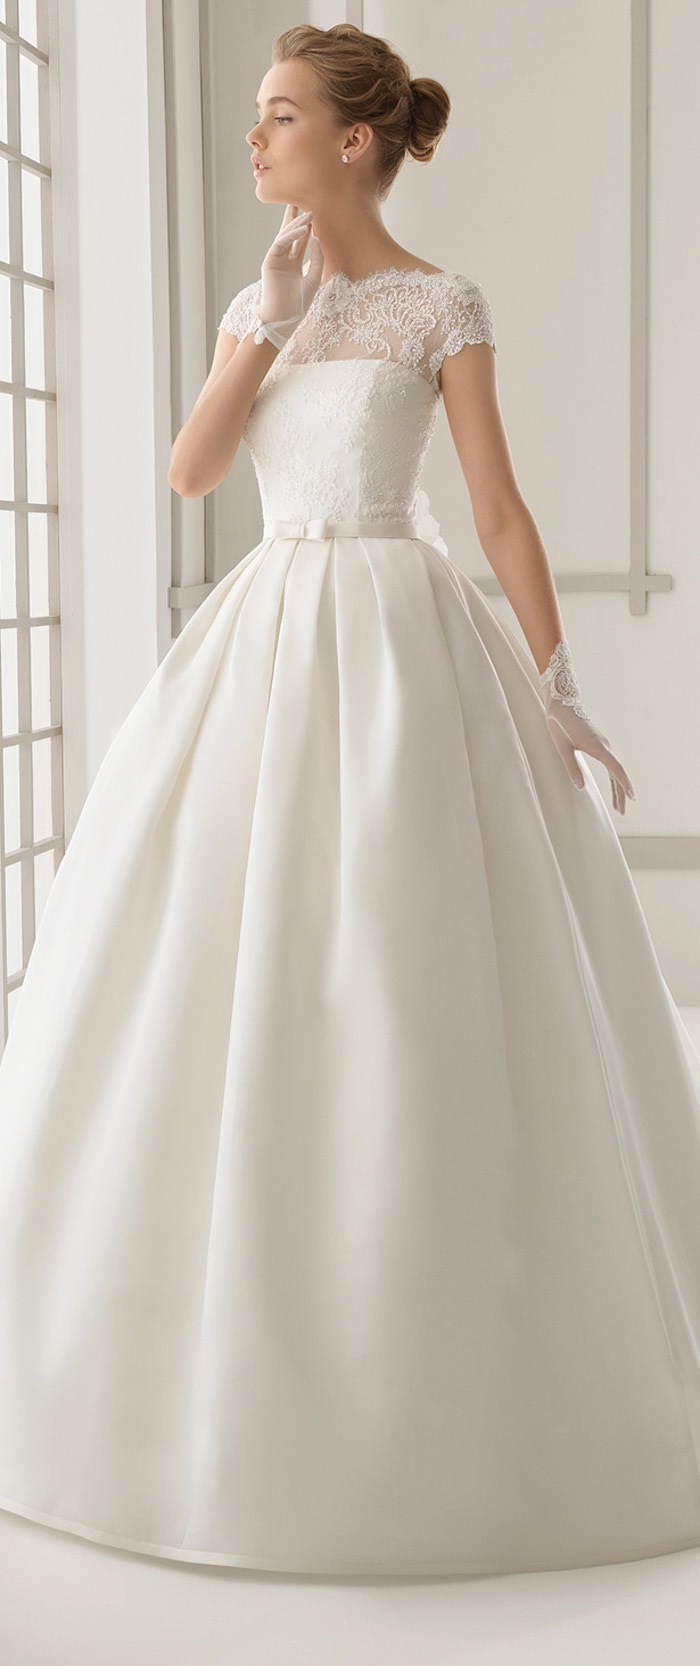 modest-wedding-dresses-5-08292015-km